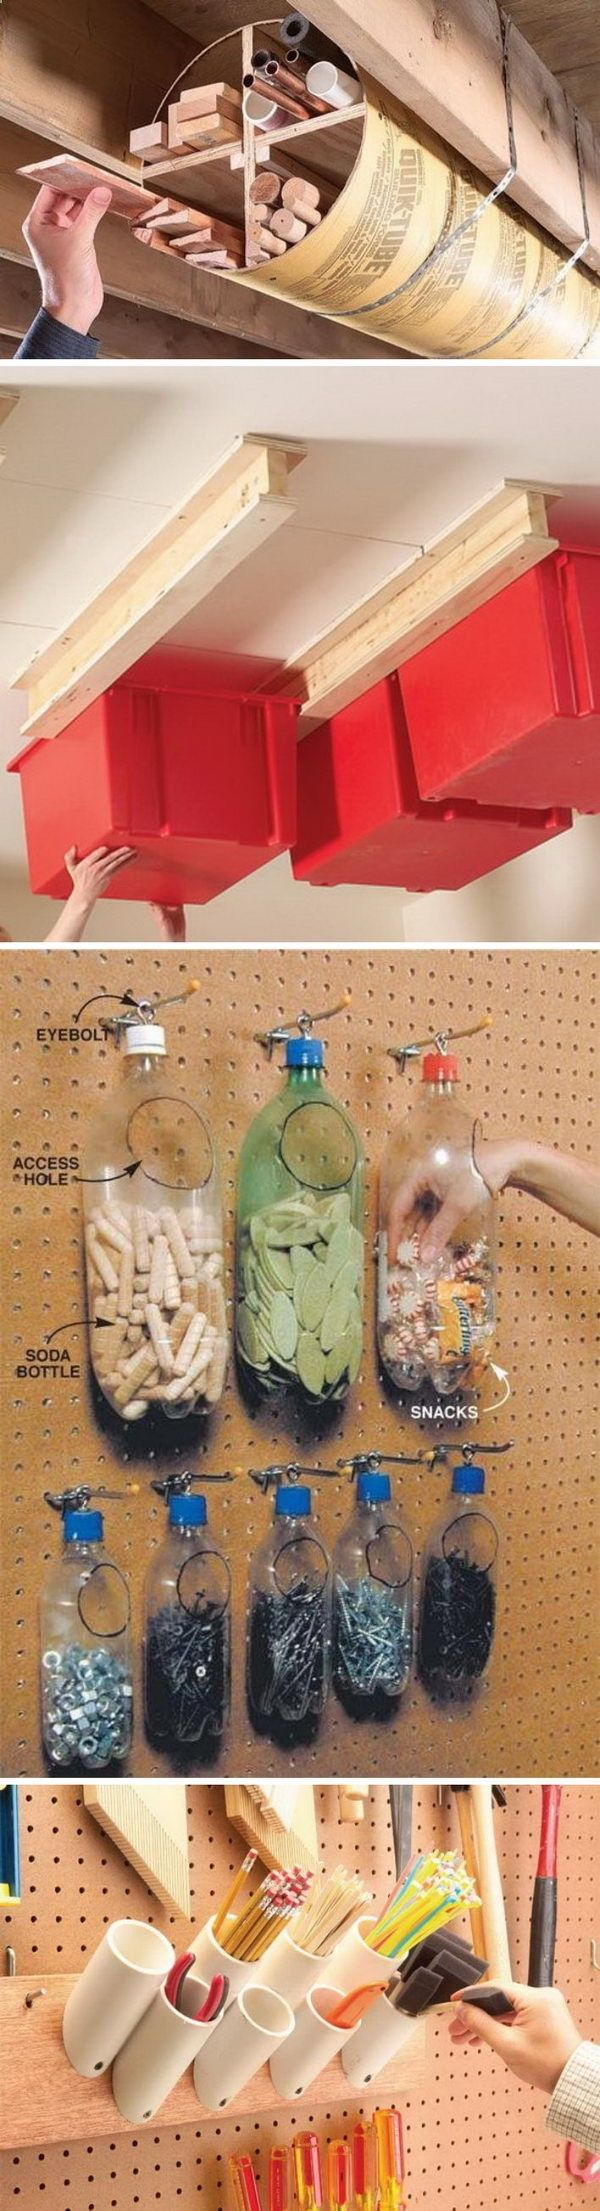 Shed Plans - Clever Garage Storage and Organization Ideas - Now You Can Build ANY Shed In A Weekend Even If You've Zero Woodworking Experience!